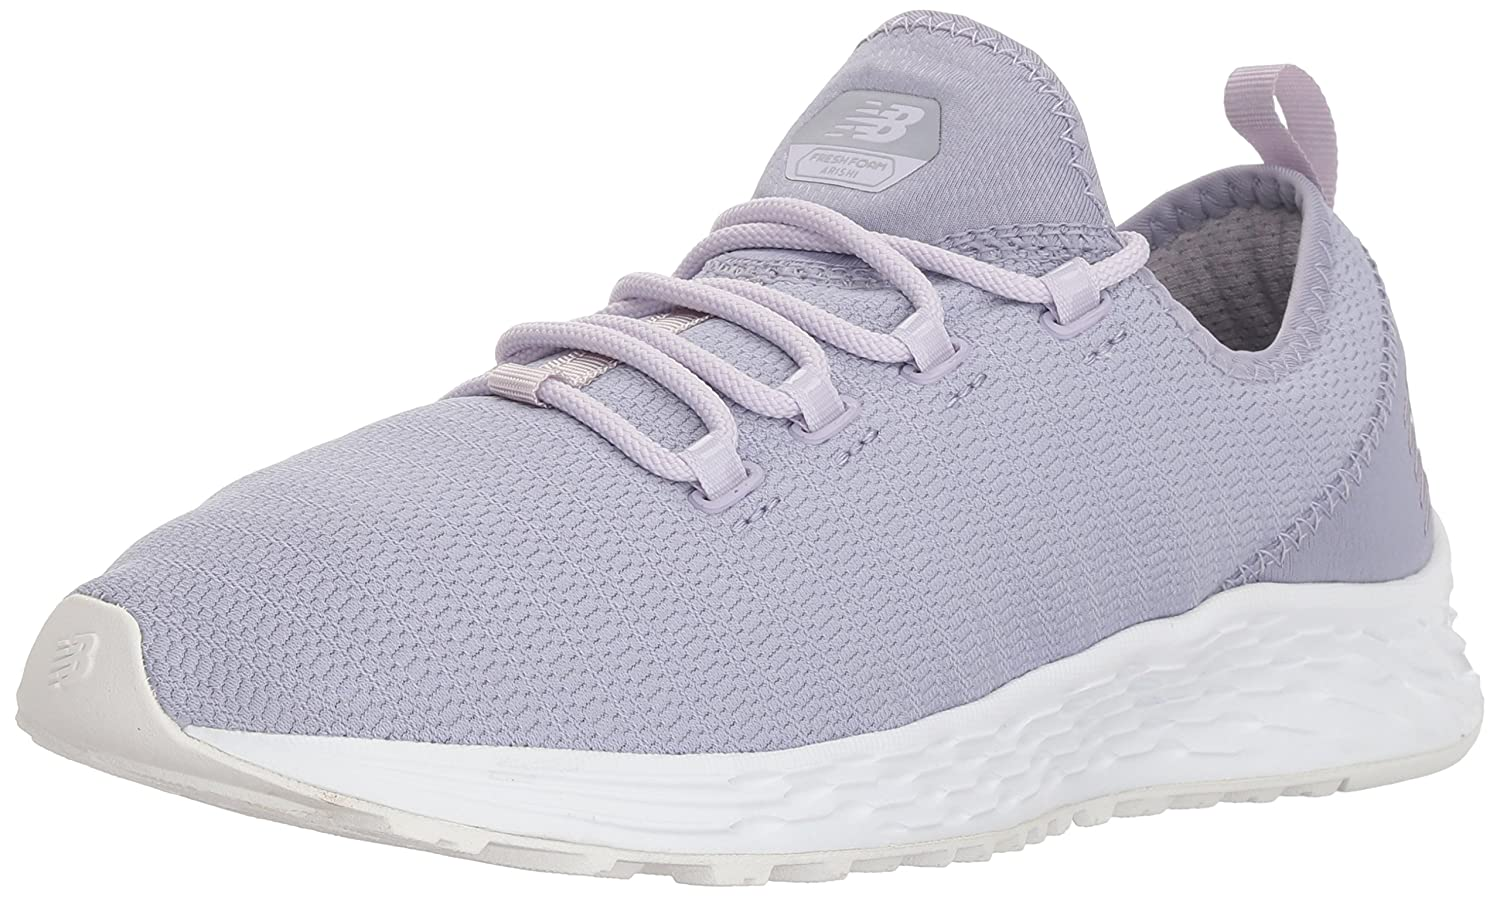 New Arishi Balance Women's Fresh Foam Arishi New Sport v1 Running Shoe B0751SWL9Y 10 D US|Daybreak ebb5b1